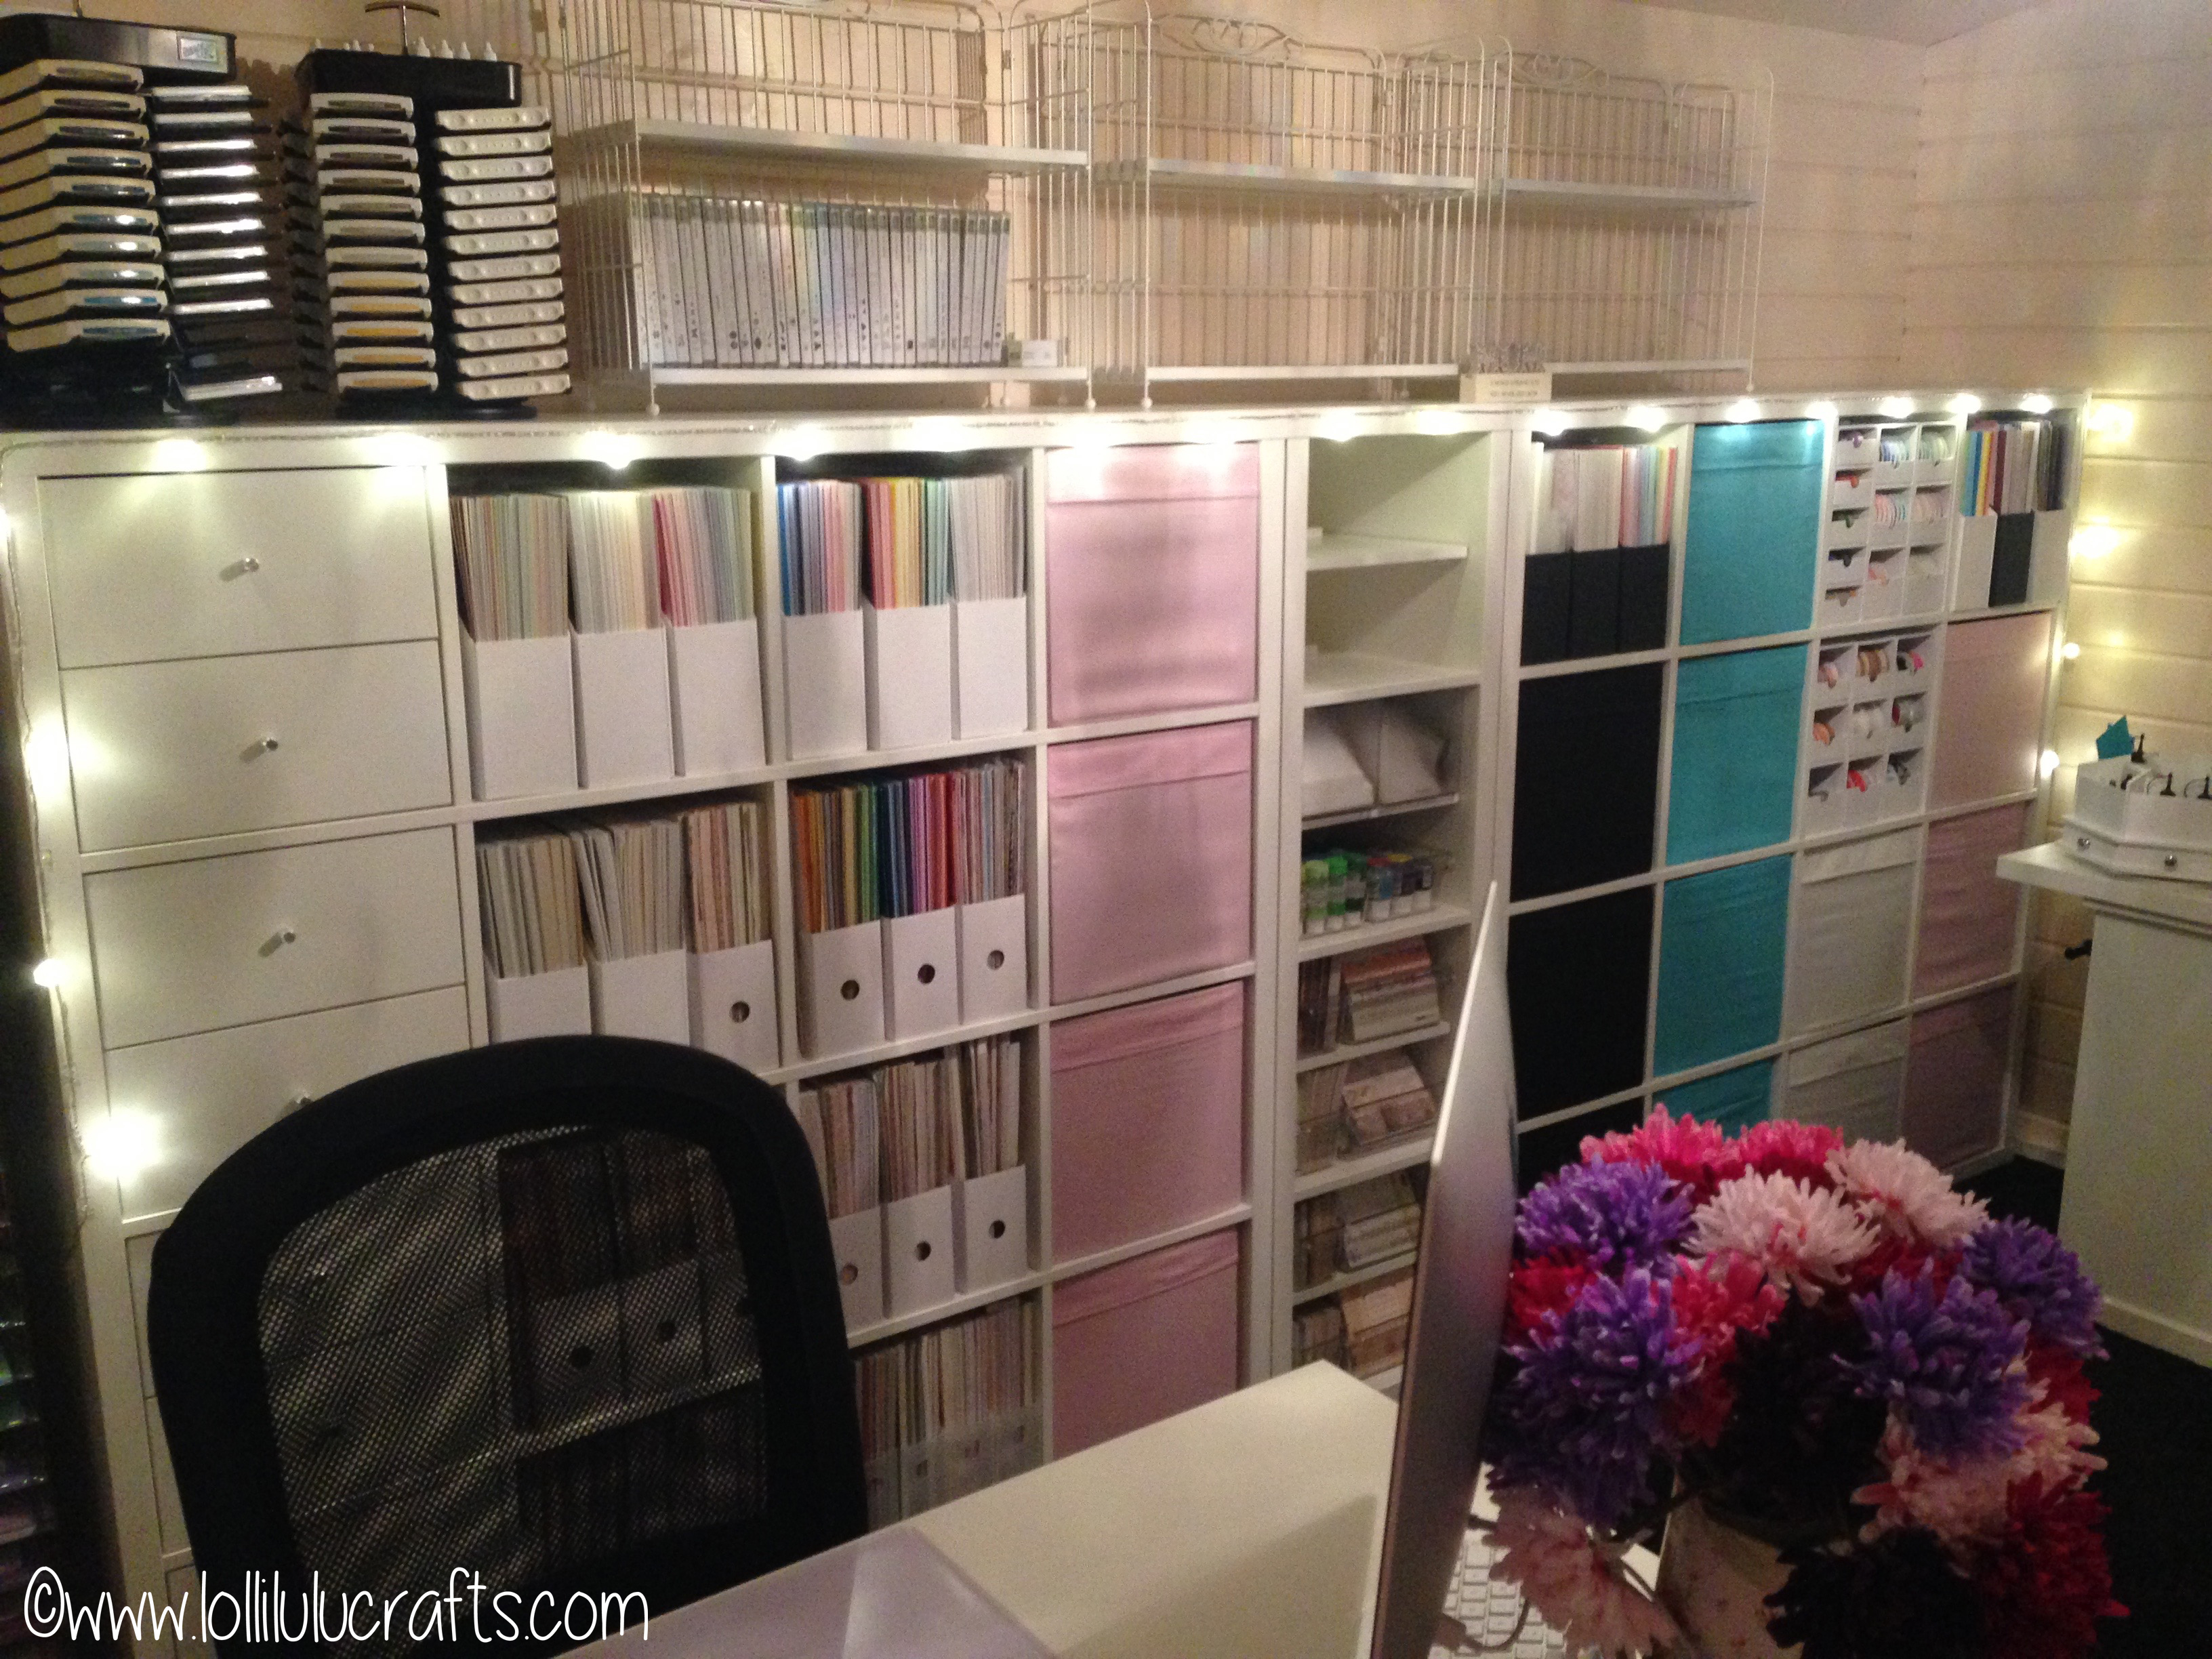 Storage Solutions For Craft Rooms: Lolli's Lodge Storage Solutions & Craft Room Tour